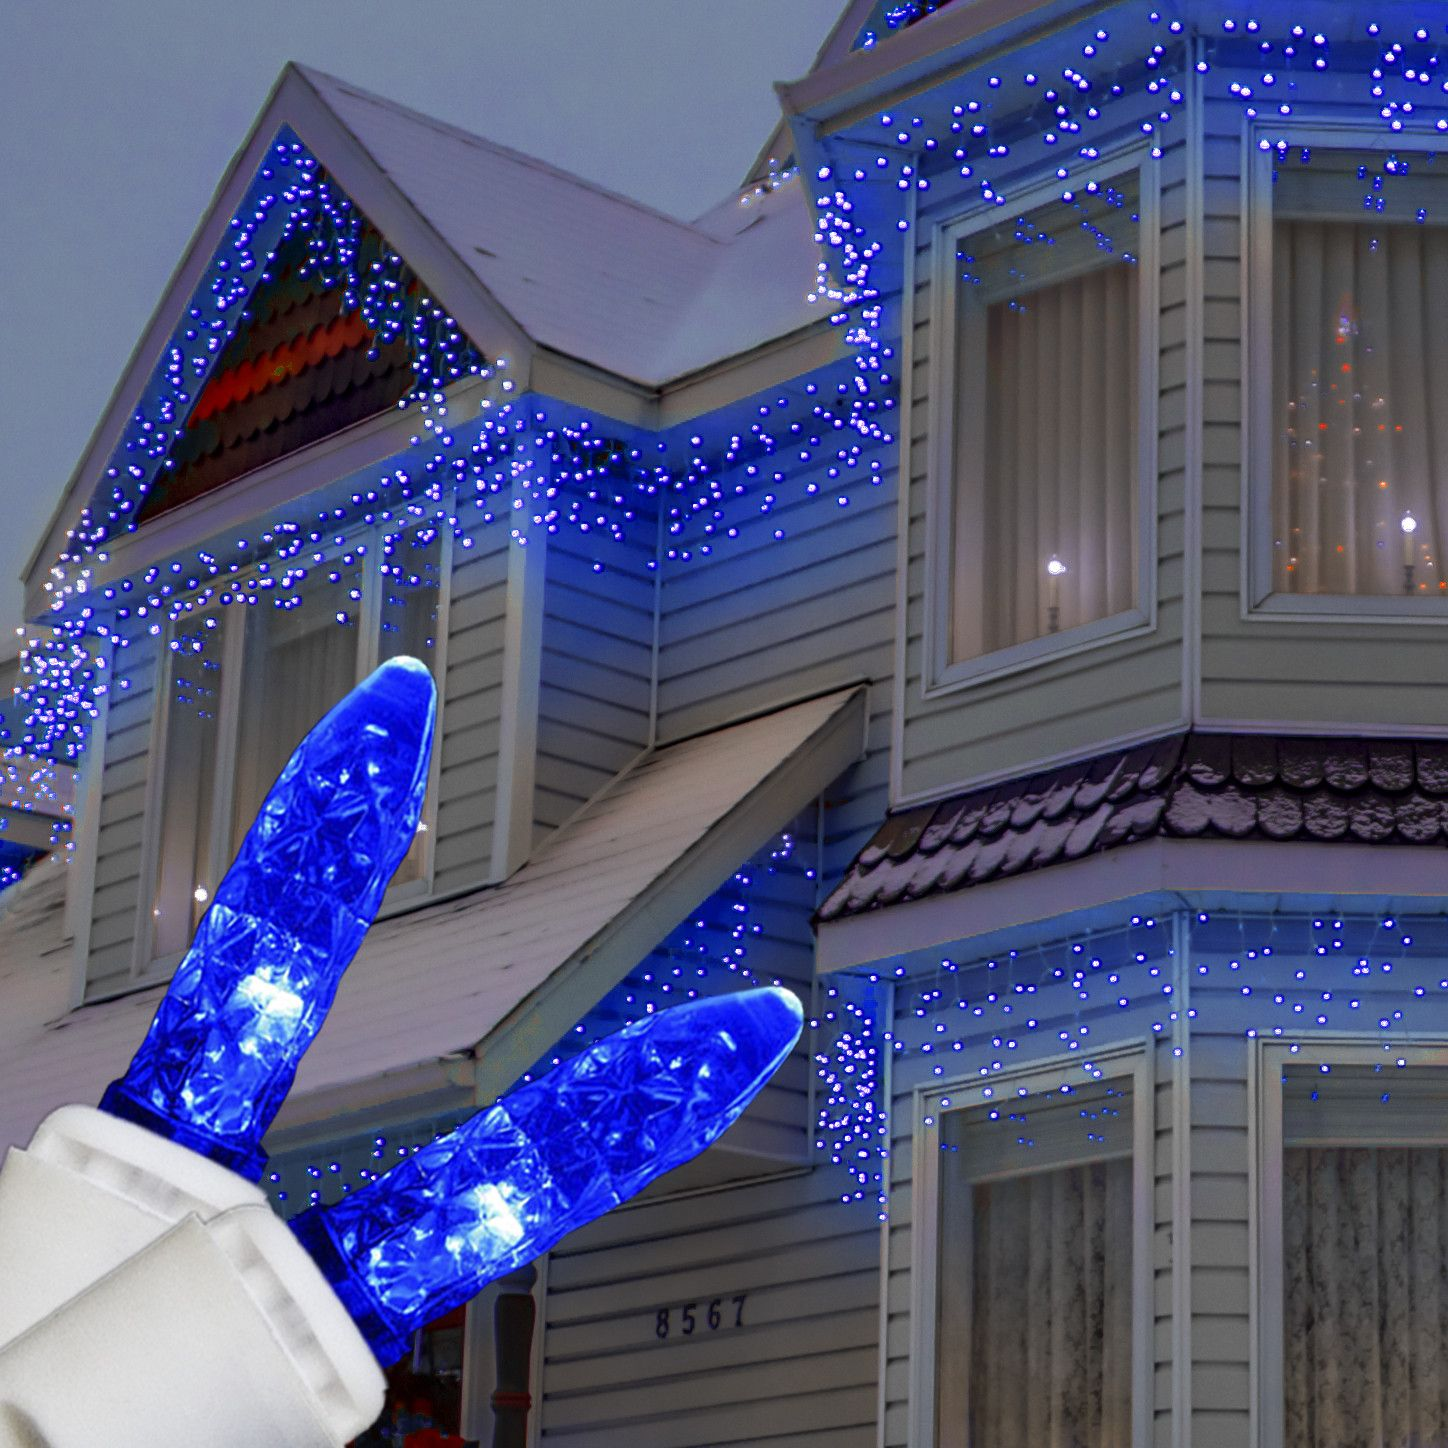 M5 Blue Led Icicle Lights Christmas Lights Etc Icicle Christmas Lights Blue Christmas Lights Halloween Lights